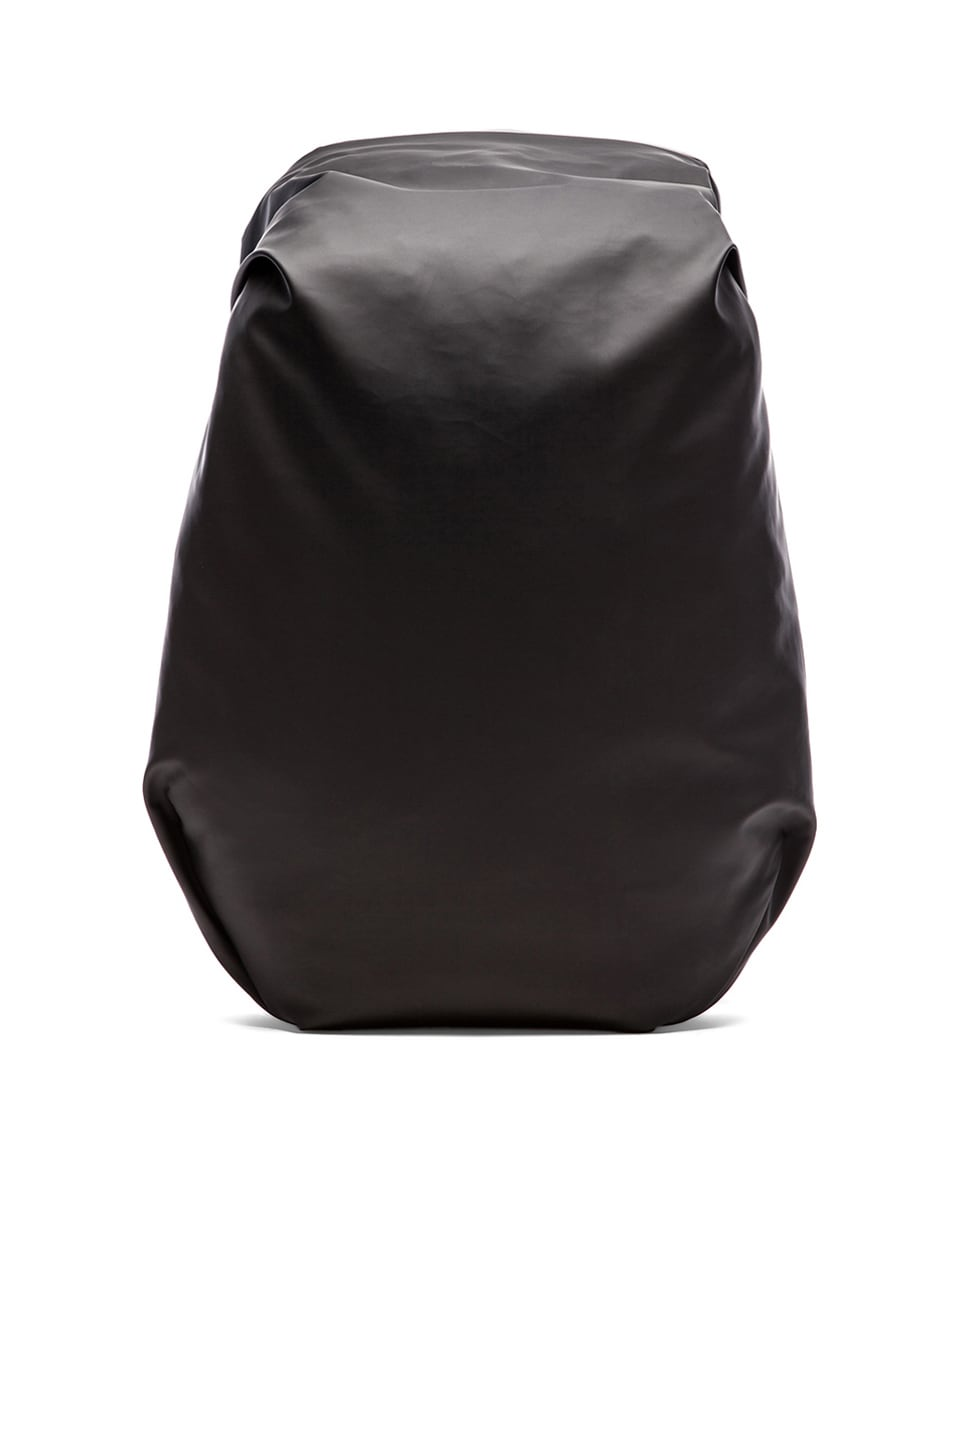 Cote & Ciel Nile Backpack in Obsidian